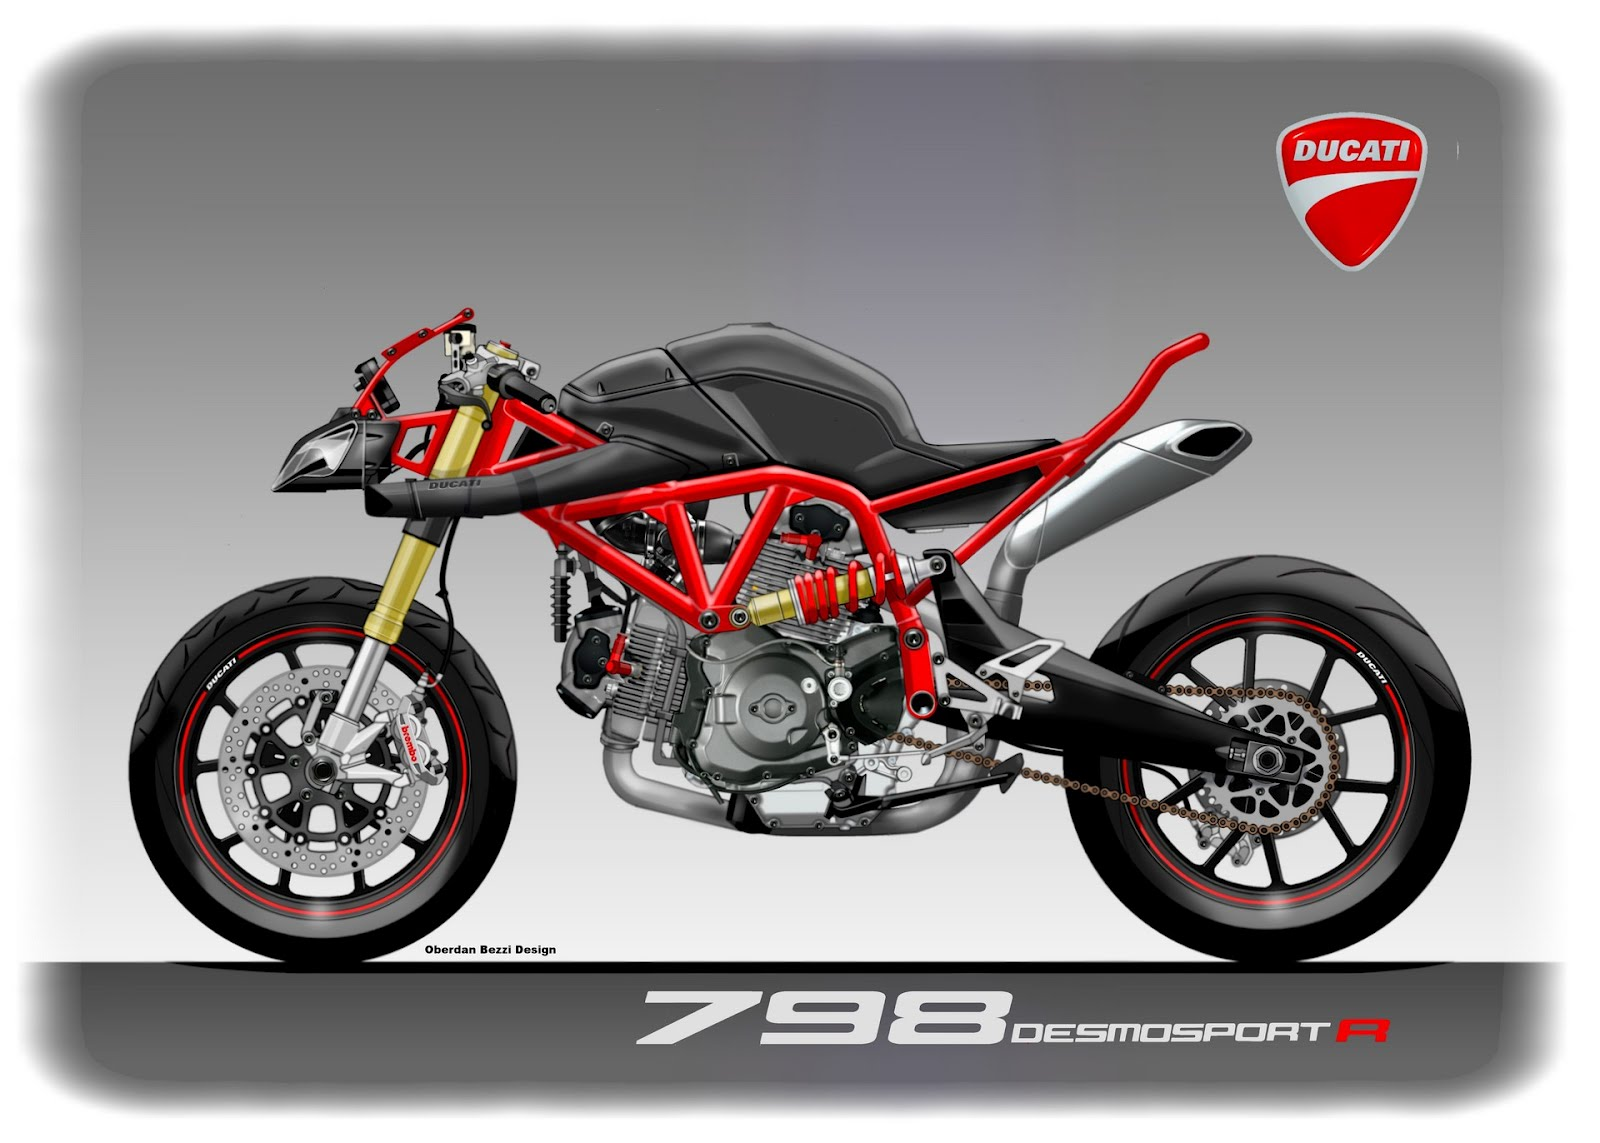 Can You Email Fax Link Me A Superbike Wiring Diagram Ducatims